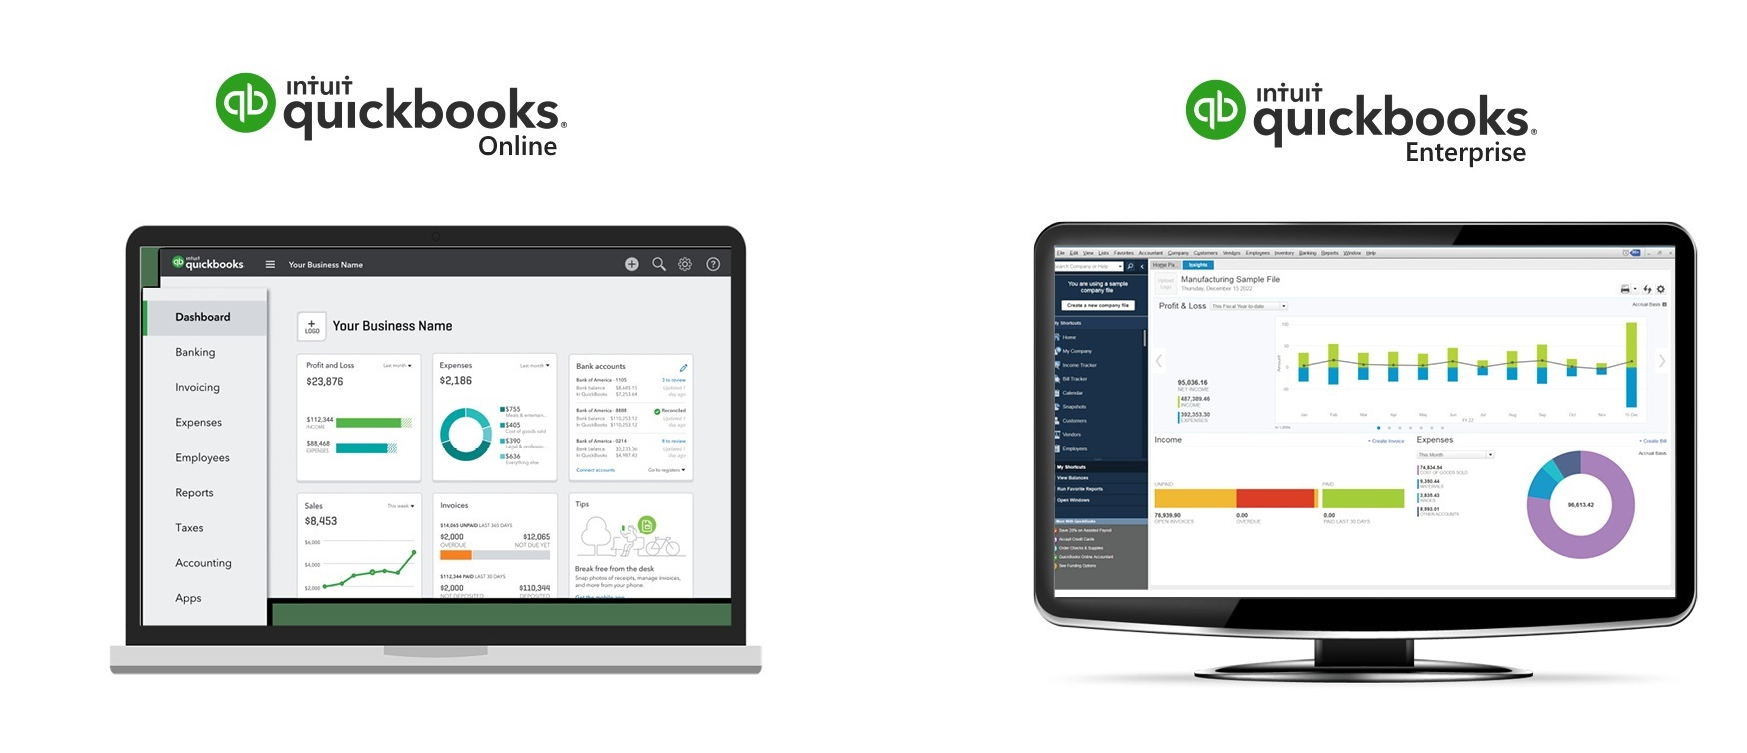 Is QuickBooks Compatible With Windows 10?